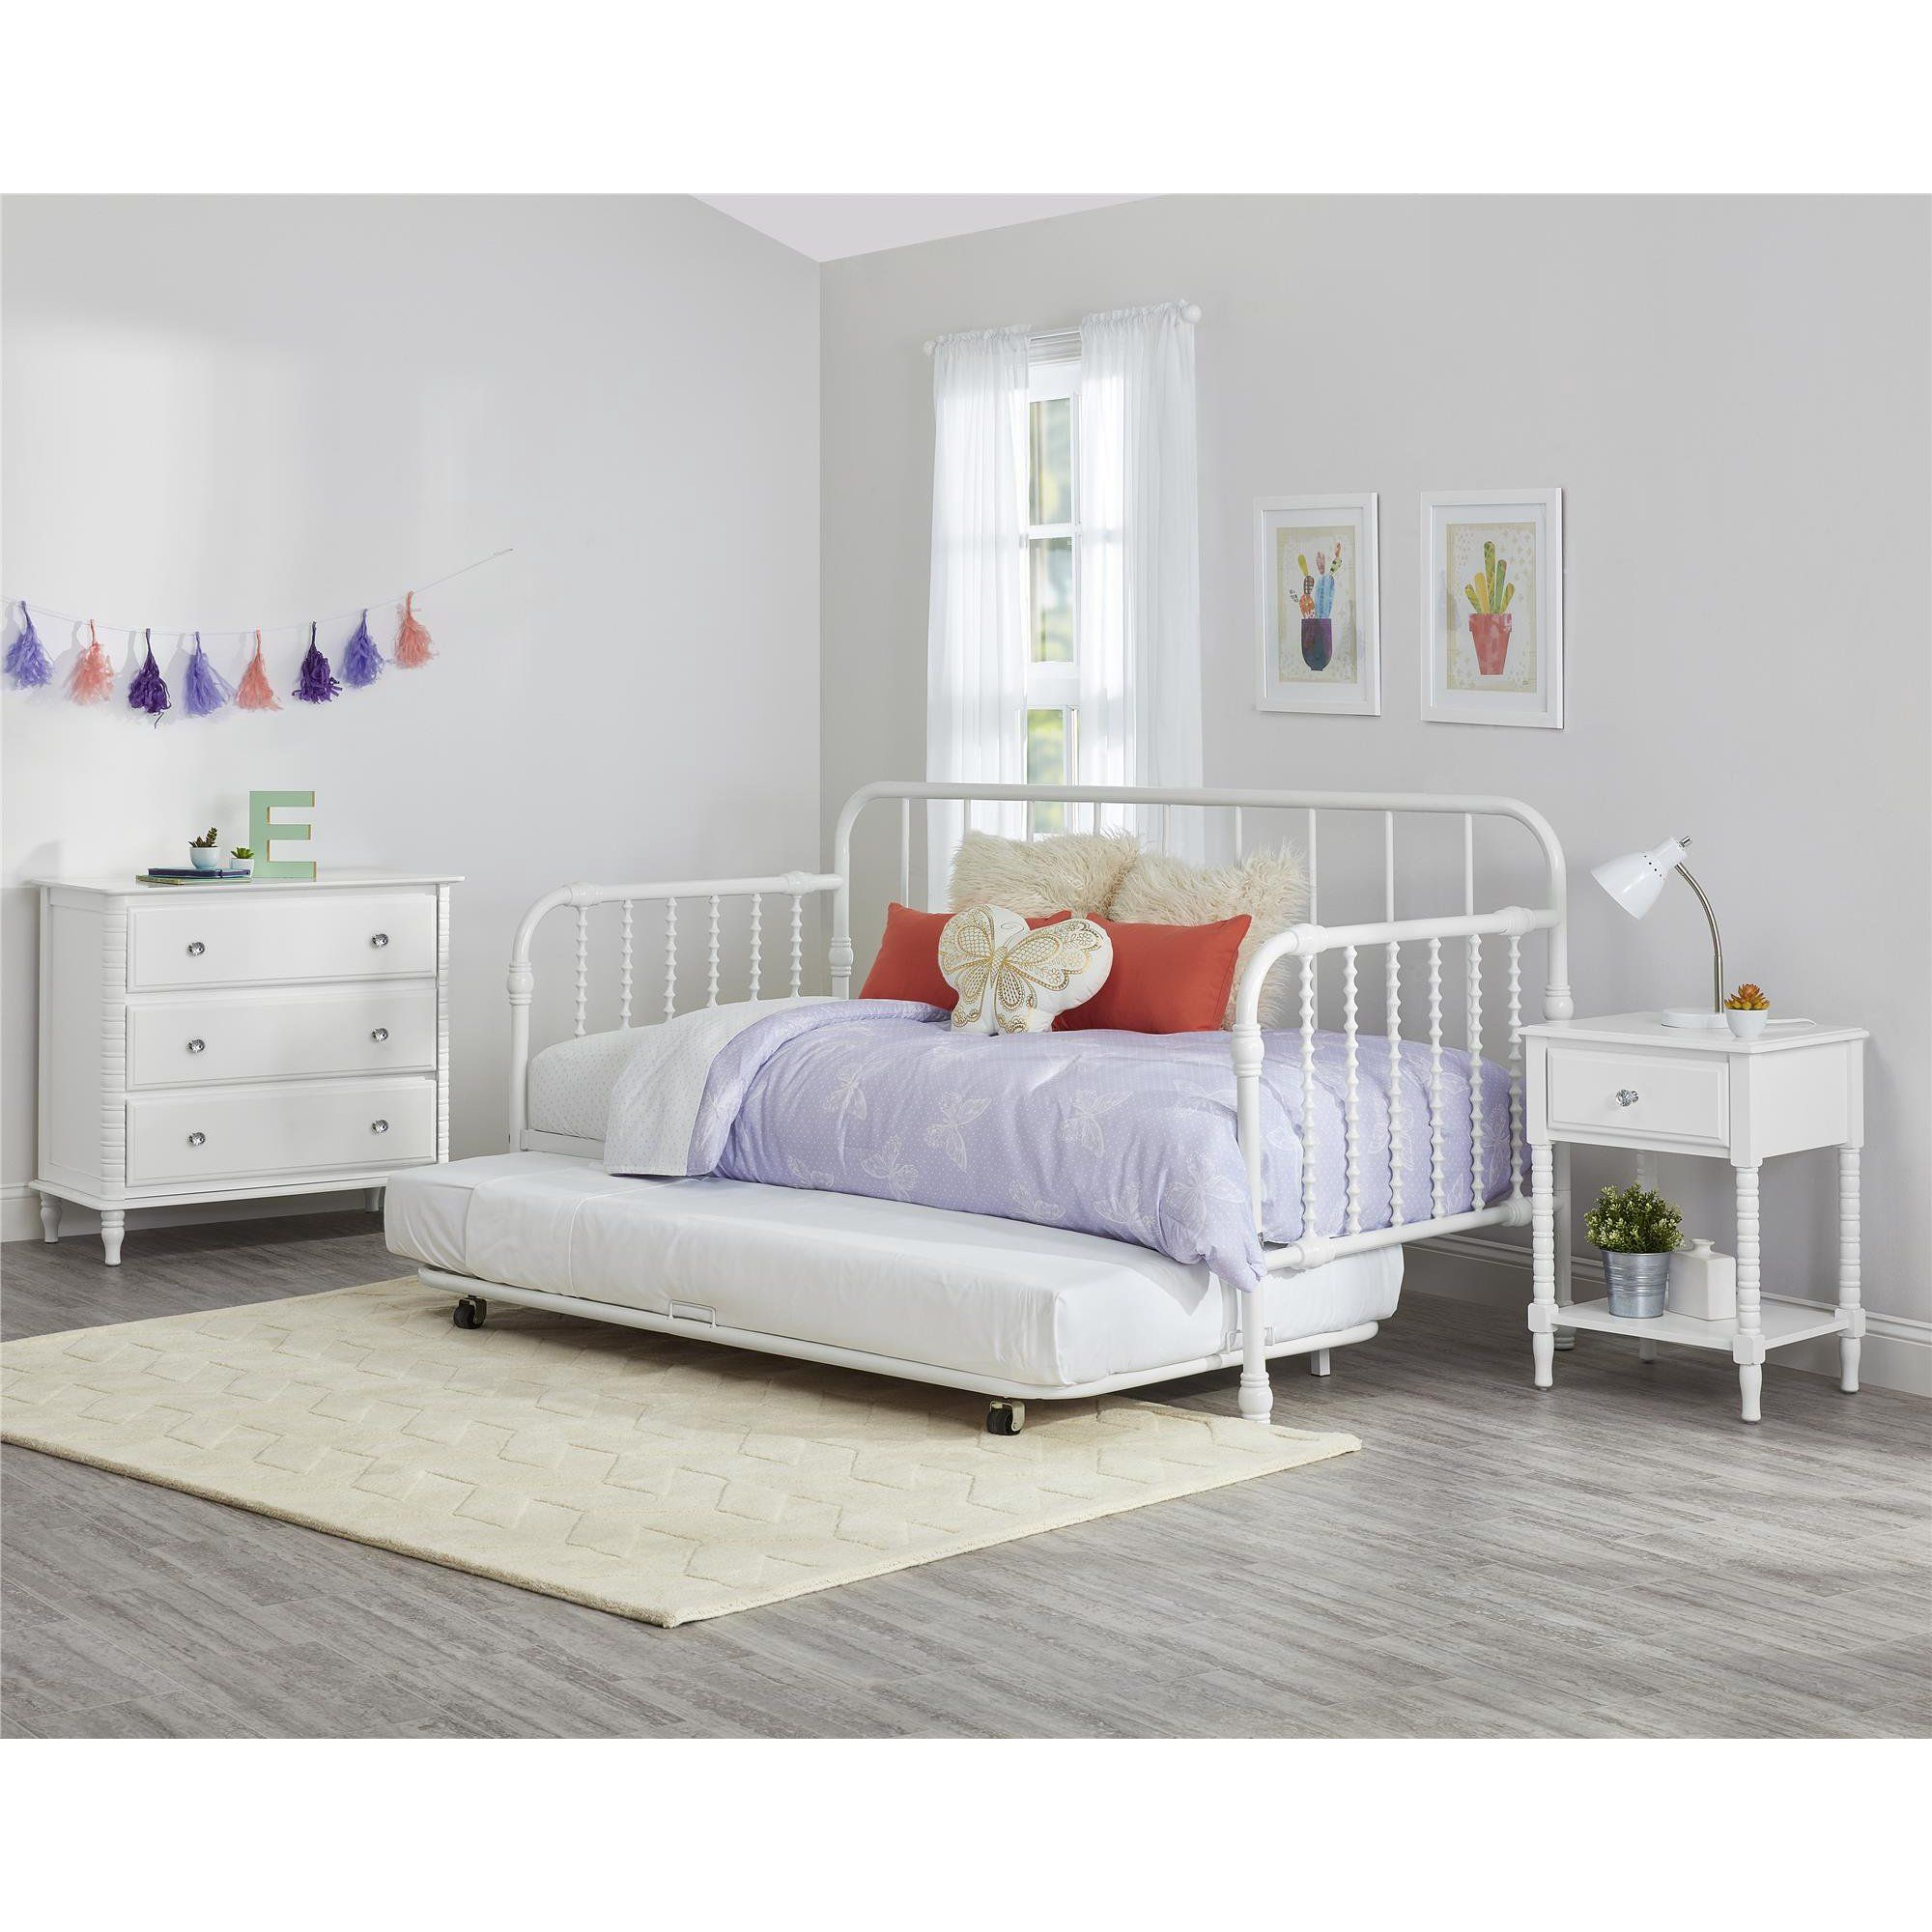 Have to have it. Olivia Bookcase Daybed 1439.99